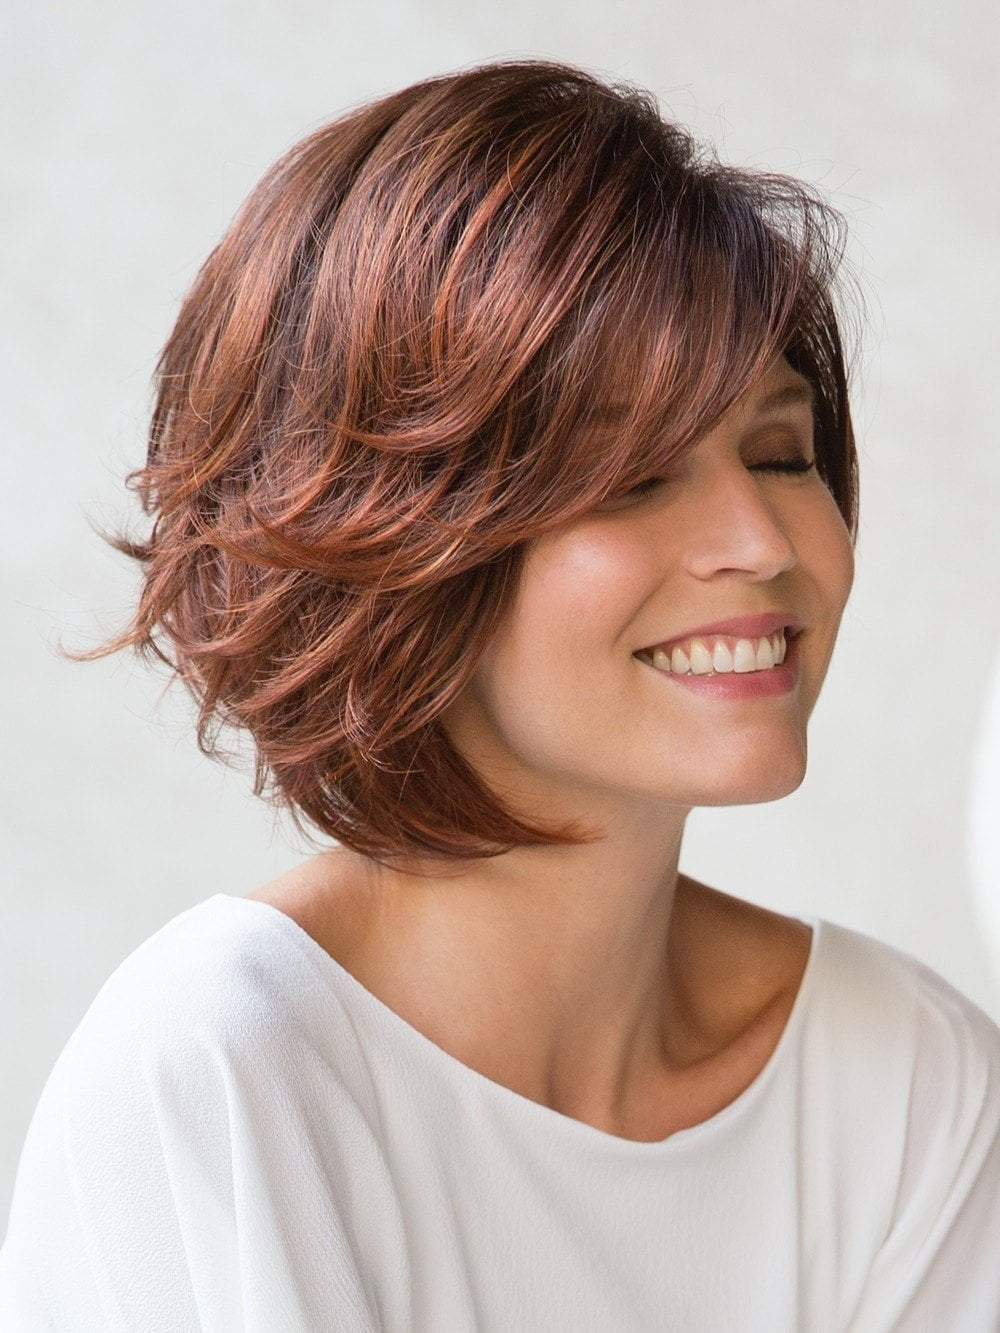 Dolce By Noriko Short Wig Wigs Com The Wig Experts